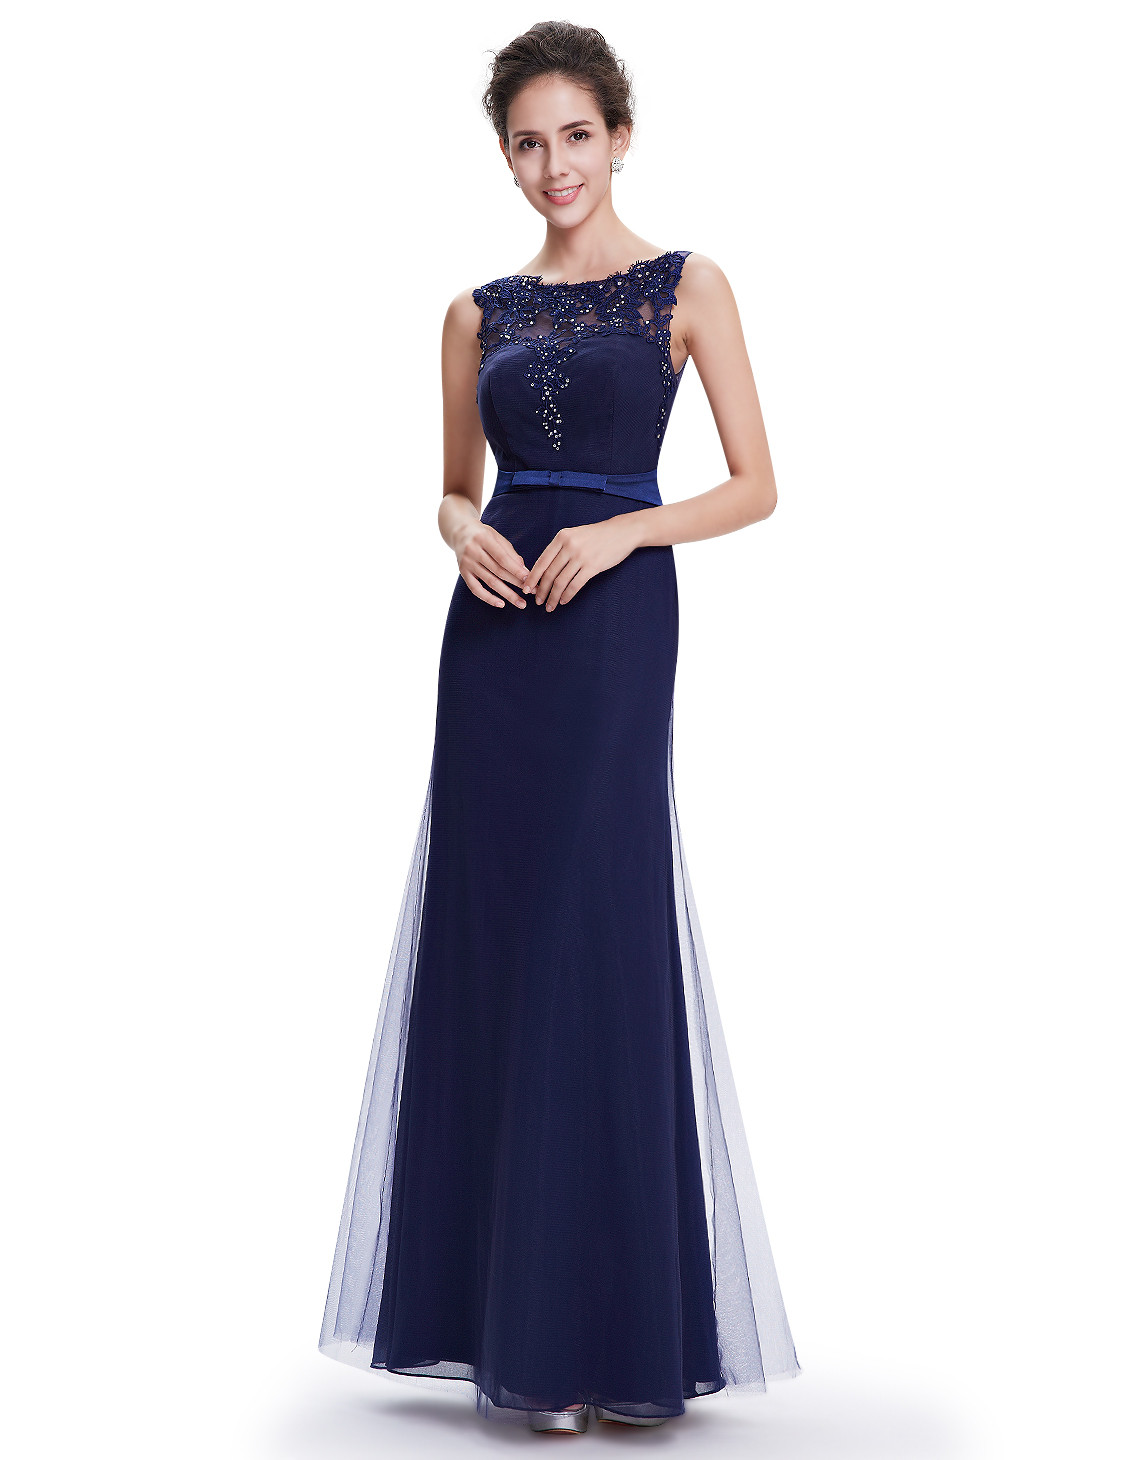 Elegant Long Navy Blue Bridesmaid Dress UK